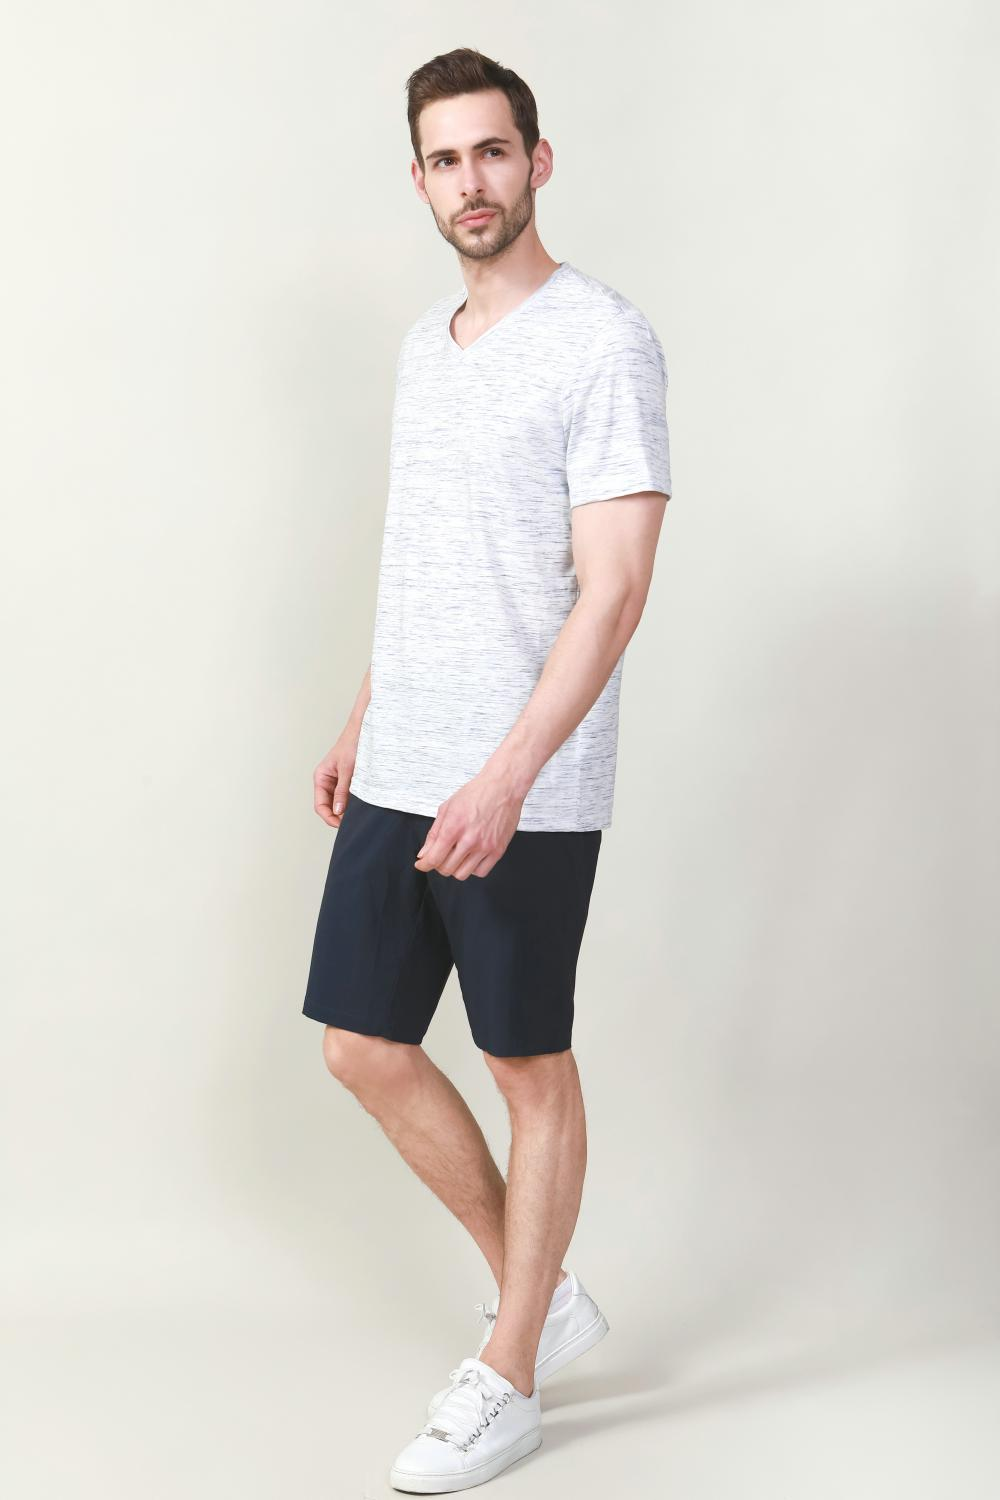 Men's causal T -shirts